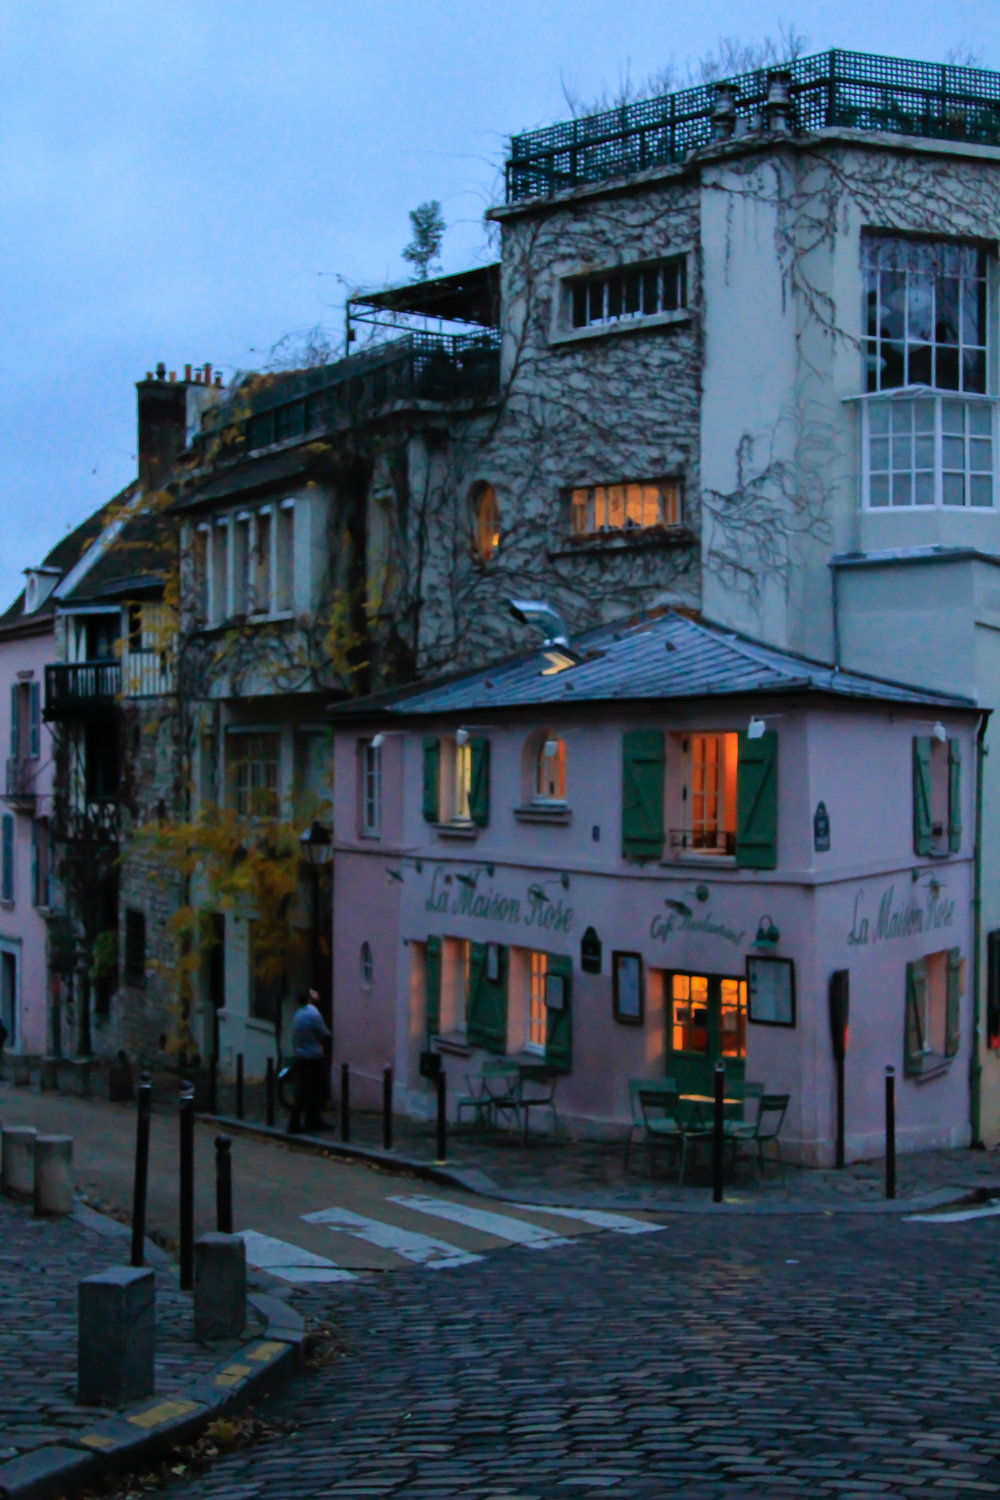 La Maison Rose in Montmartre